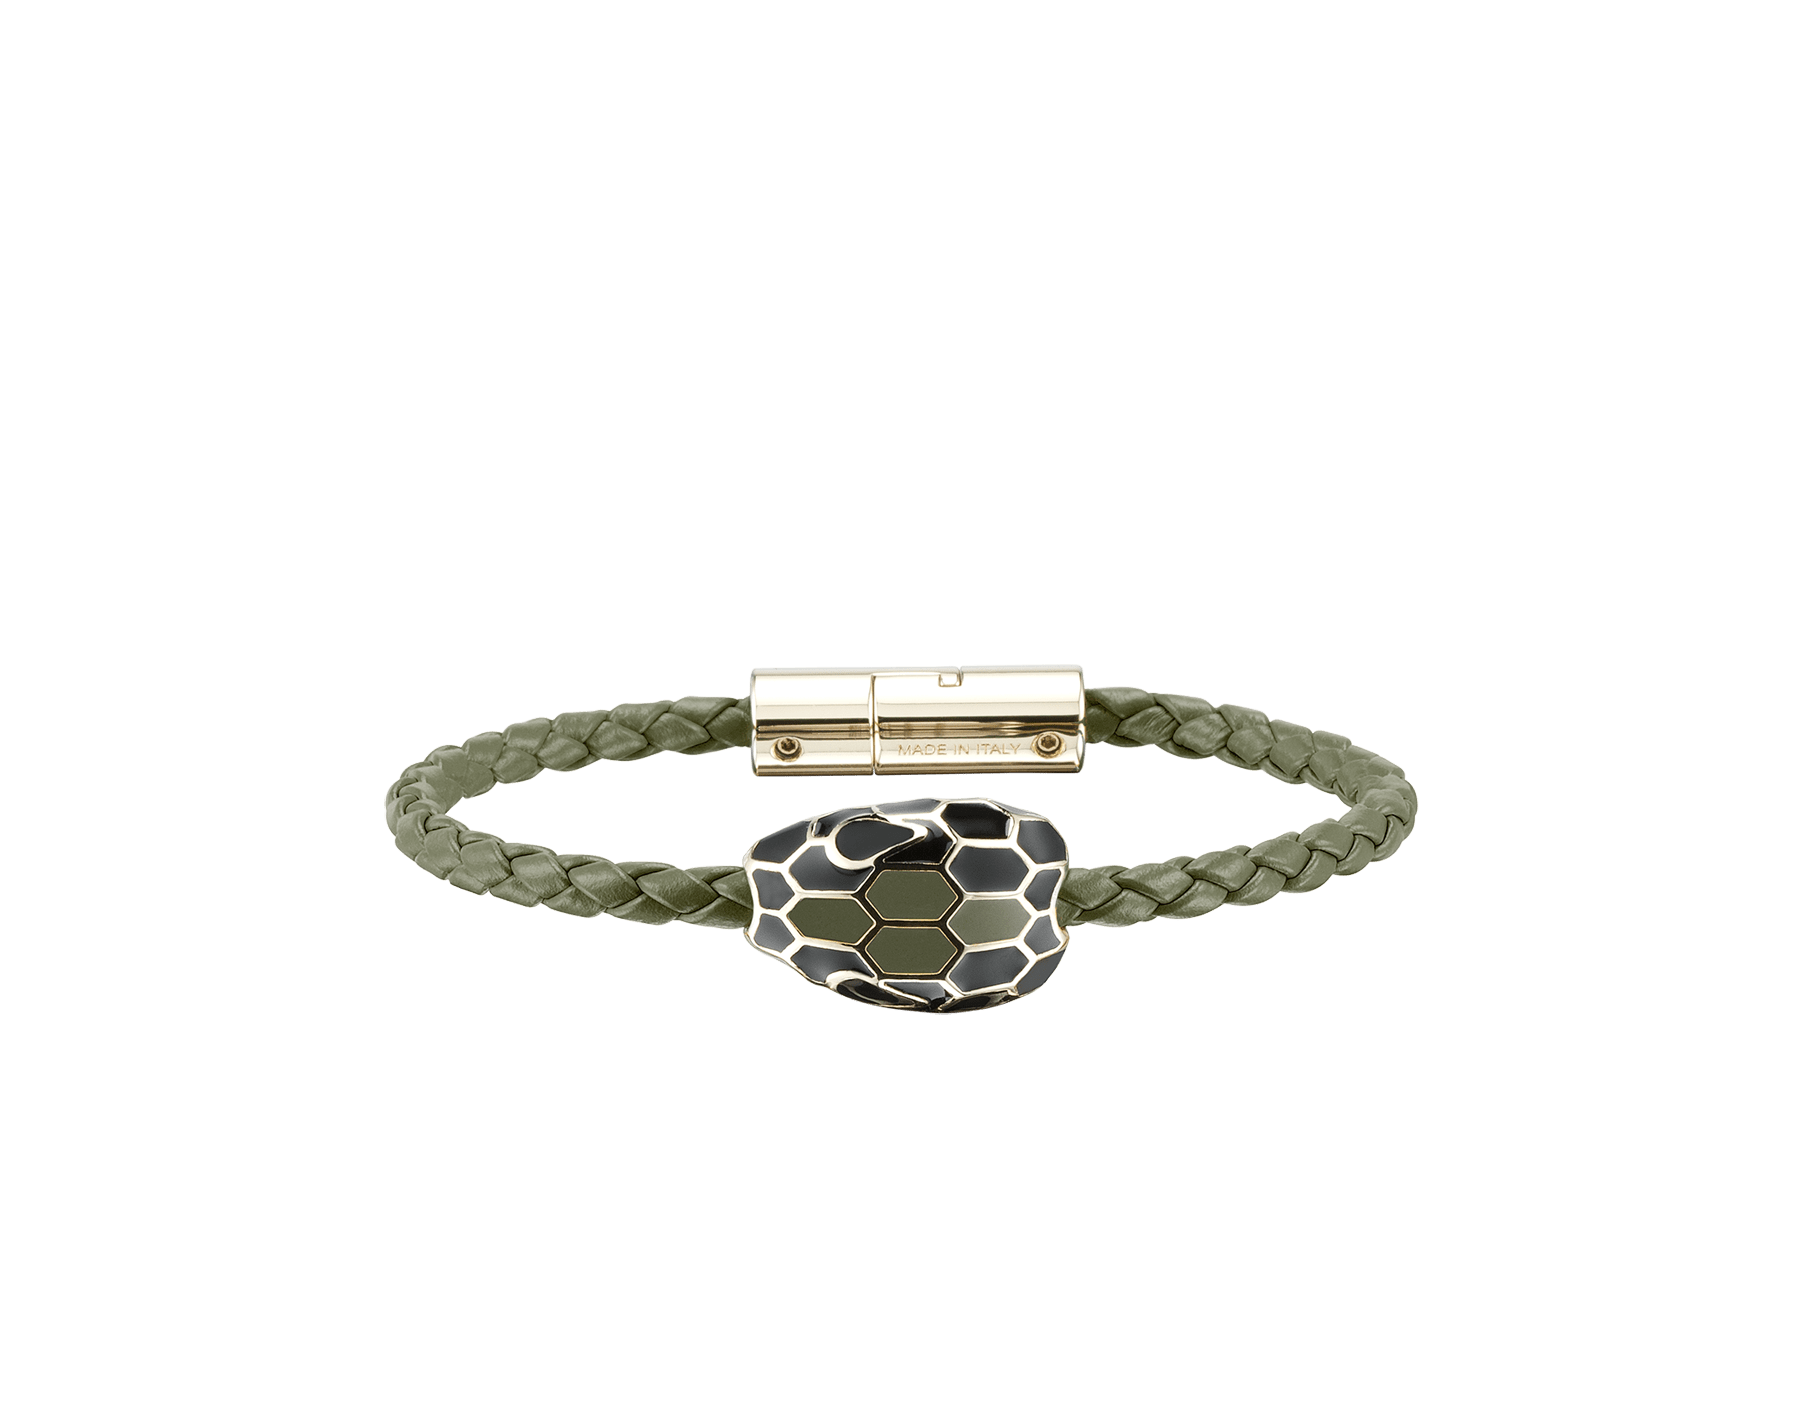 Serpenti Forever braid bracelet in mimetic jade woven calf leather with the iconic snakehead décor in black and mimetic jade enamel with seductive black enamel eyes. SerpBraid-WCL-MJ image 1